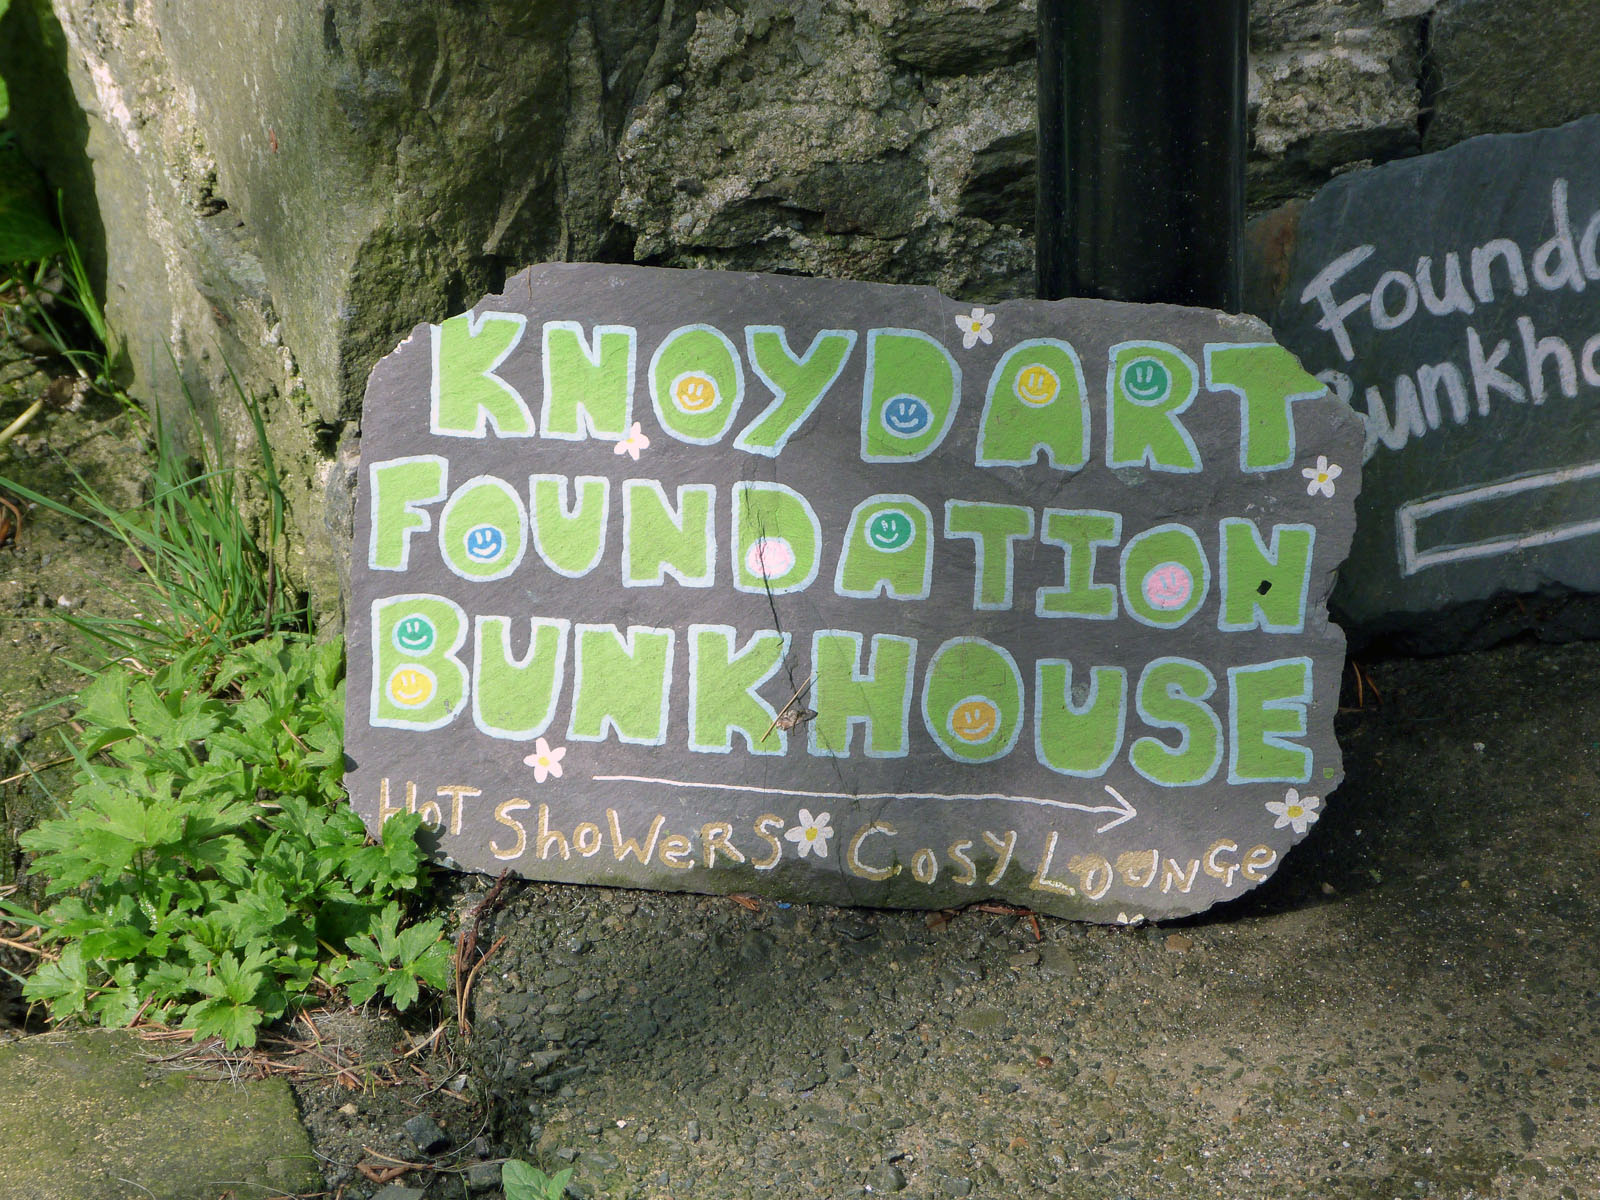 About the Knoydart Bunkhouse